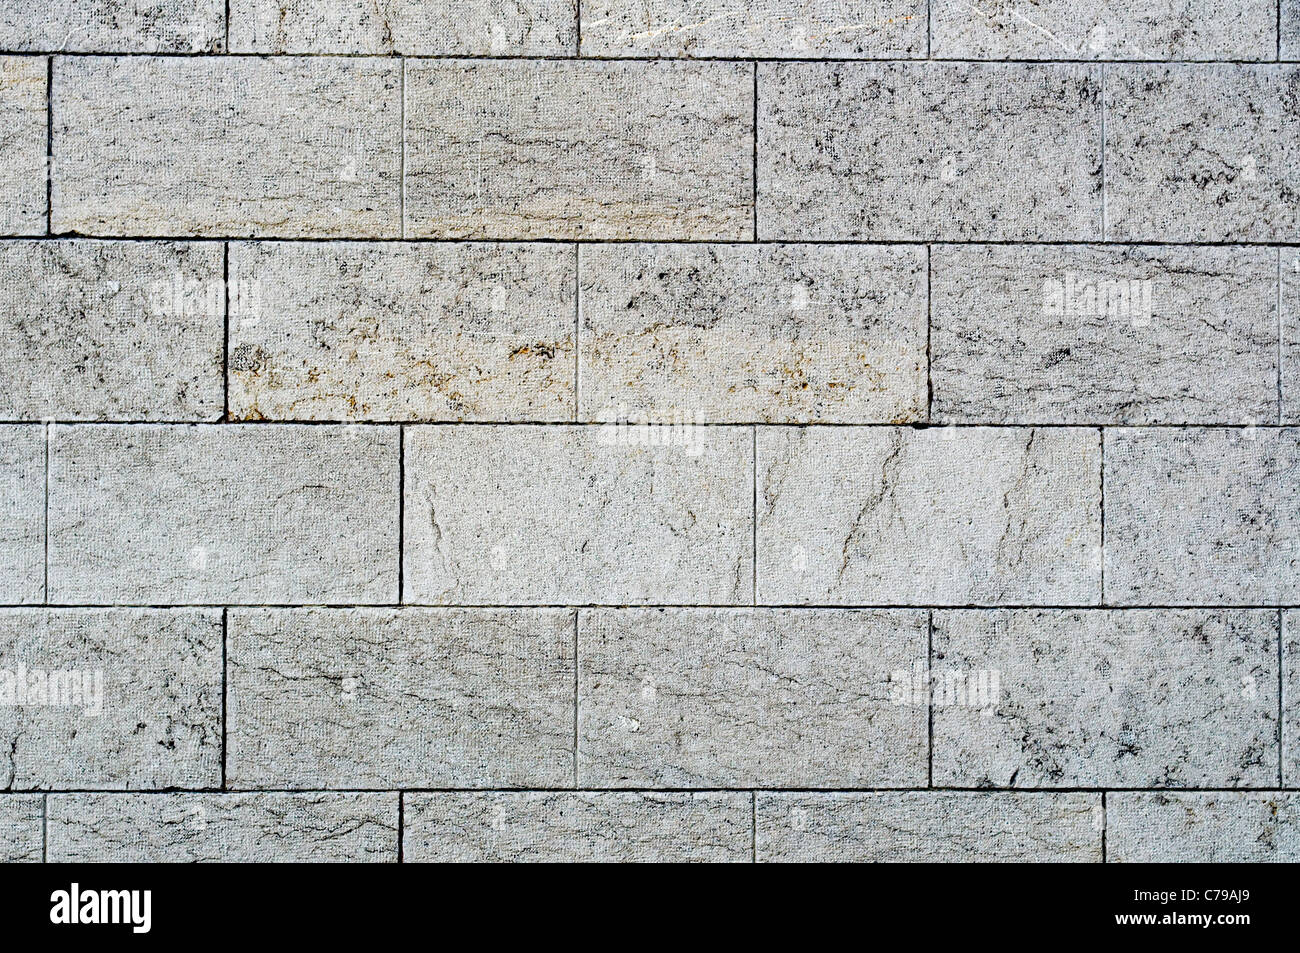 texture of ancient stone walls as a background - Stock Image